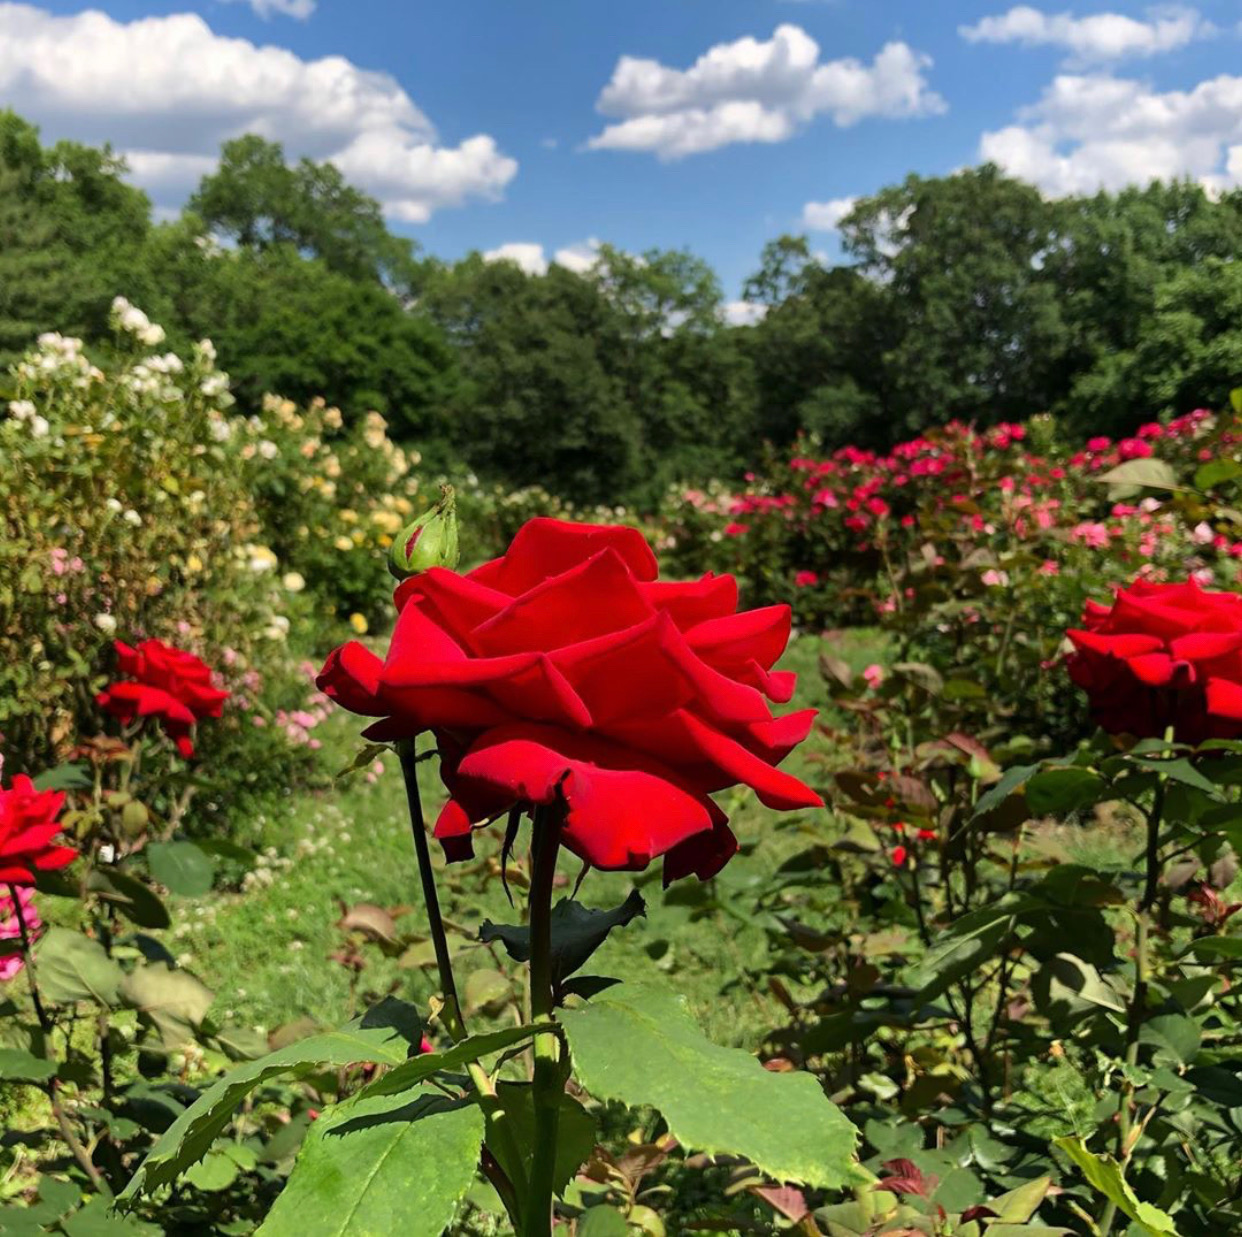 nj mom essex county rose garden best gardens and nature centers New Jersey